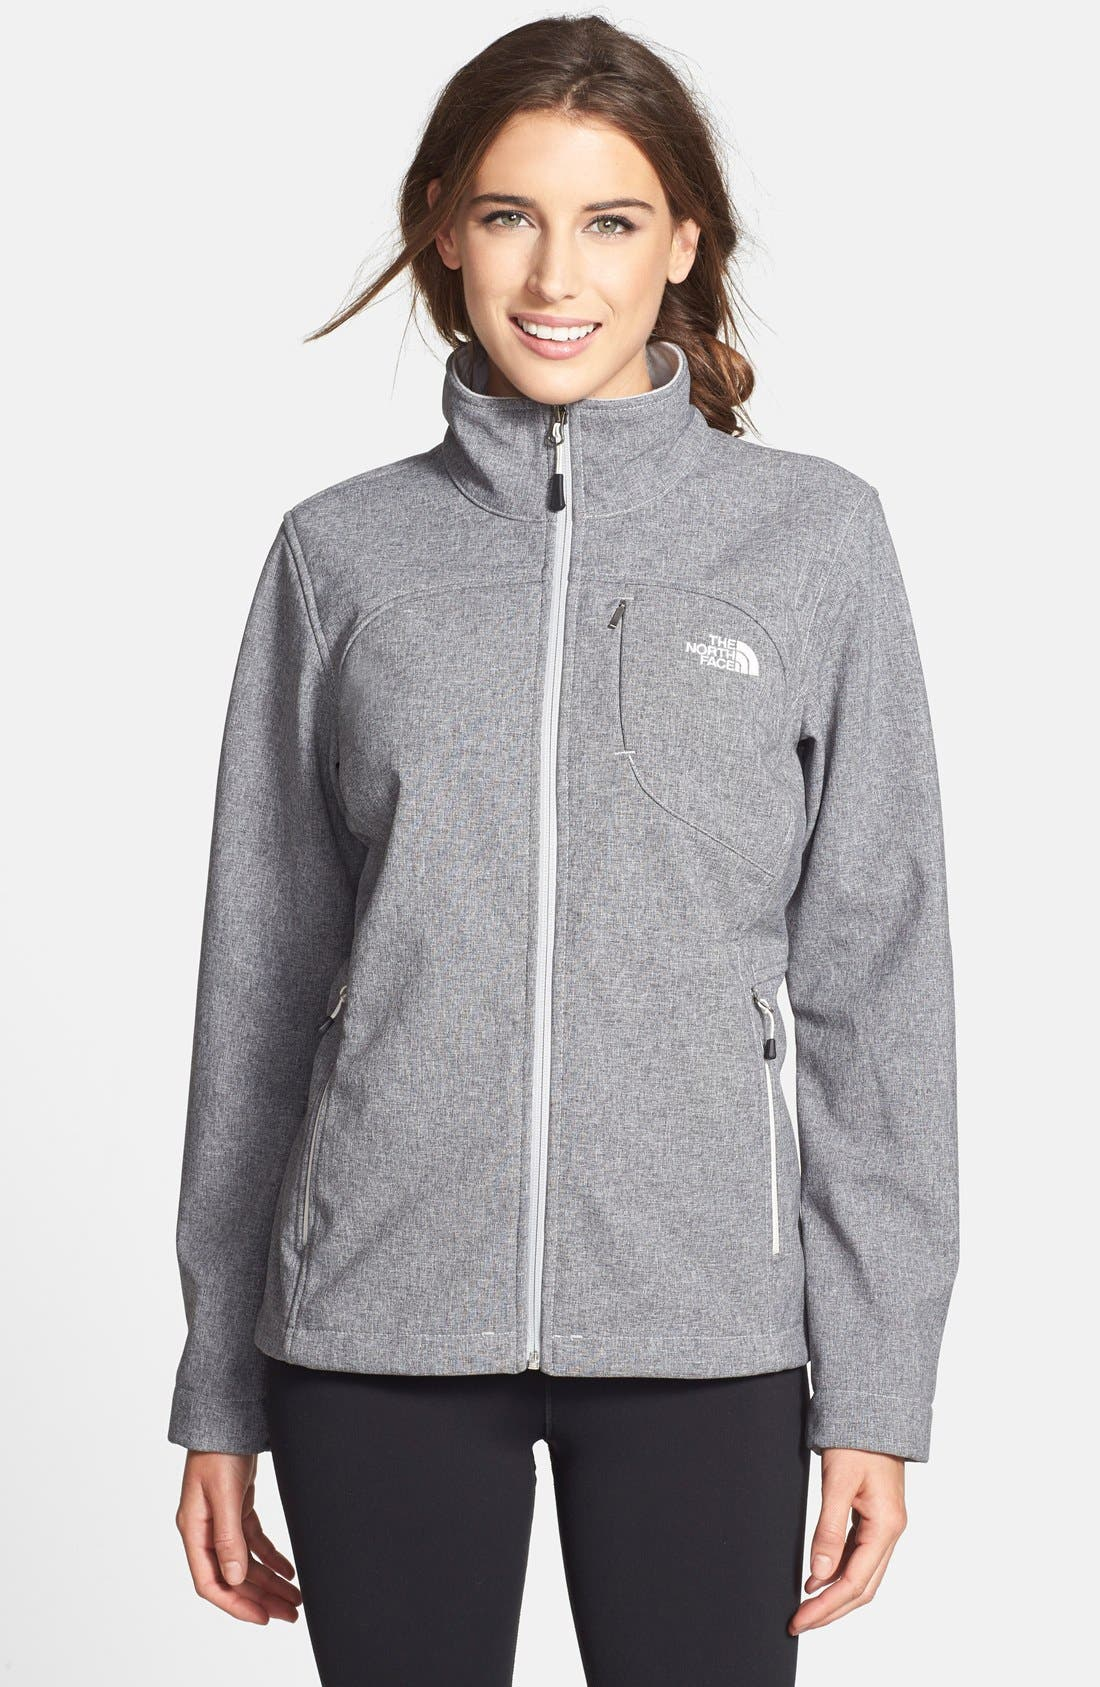 Alternate Image 1 Selected - The North Face 'Apex Bionic' Jacket